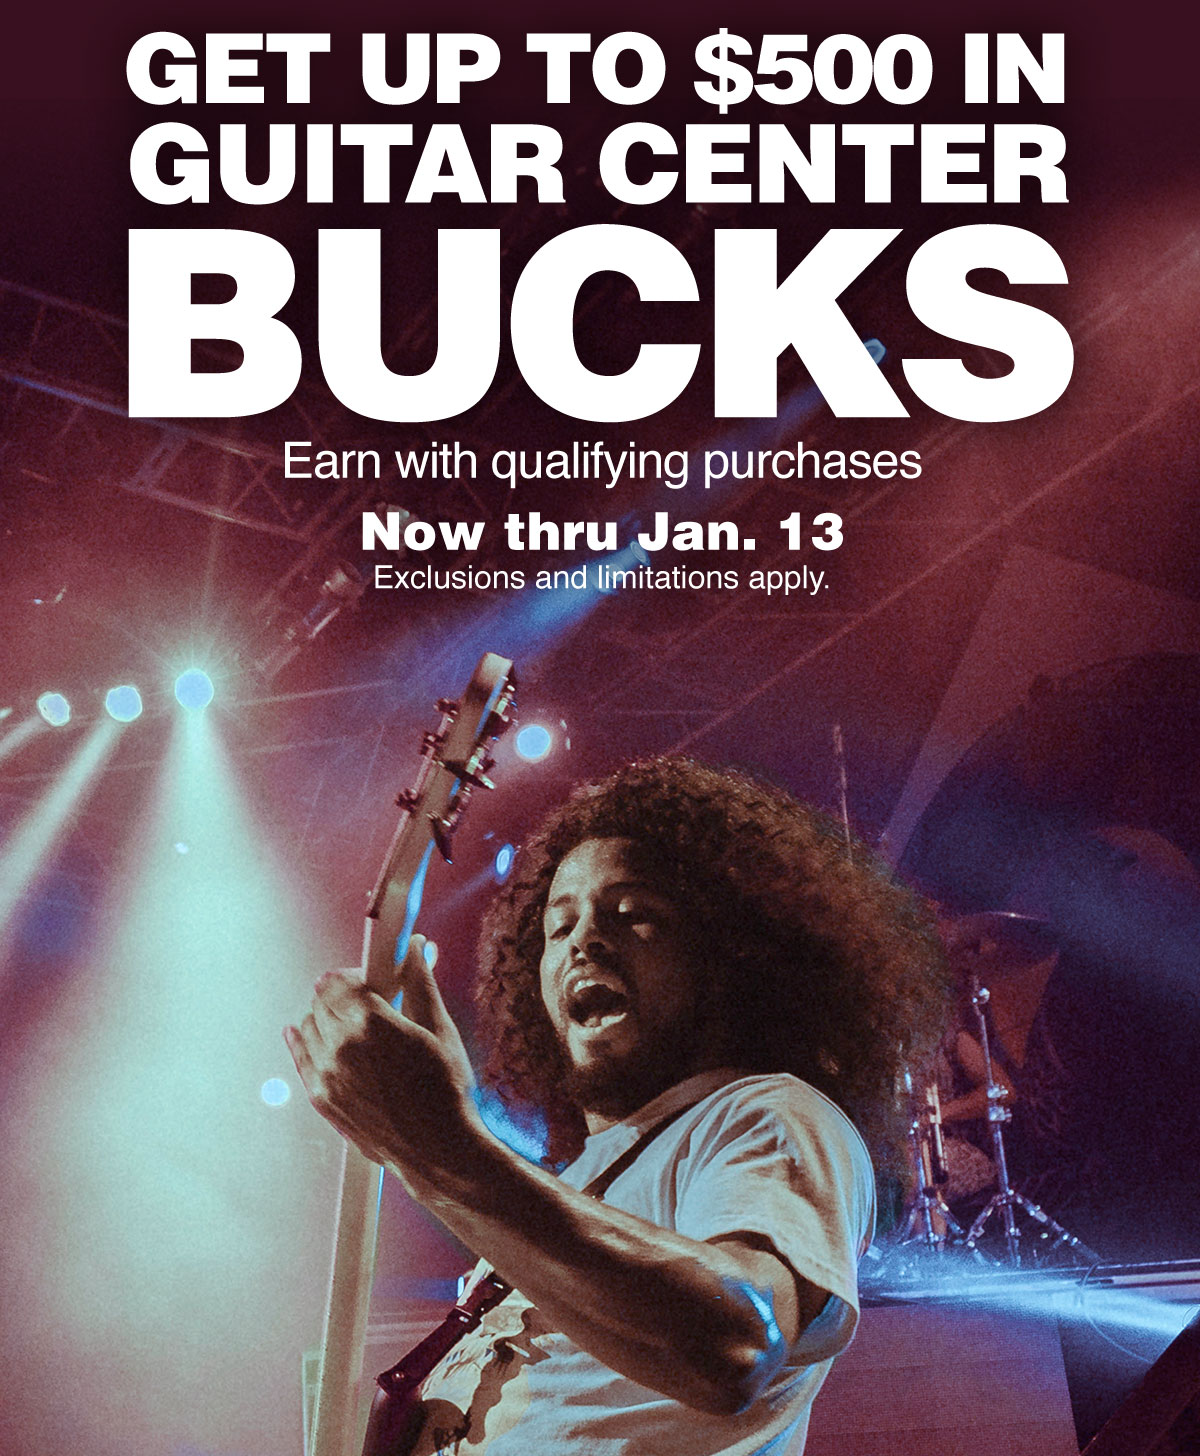 Get up to 500 dollars in Guitar Center bucks. Earn with qualifying purchases. Now thru January 13. Exclusions and limitations apply.